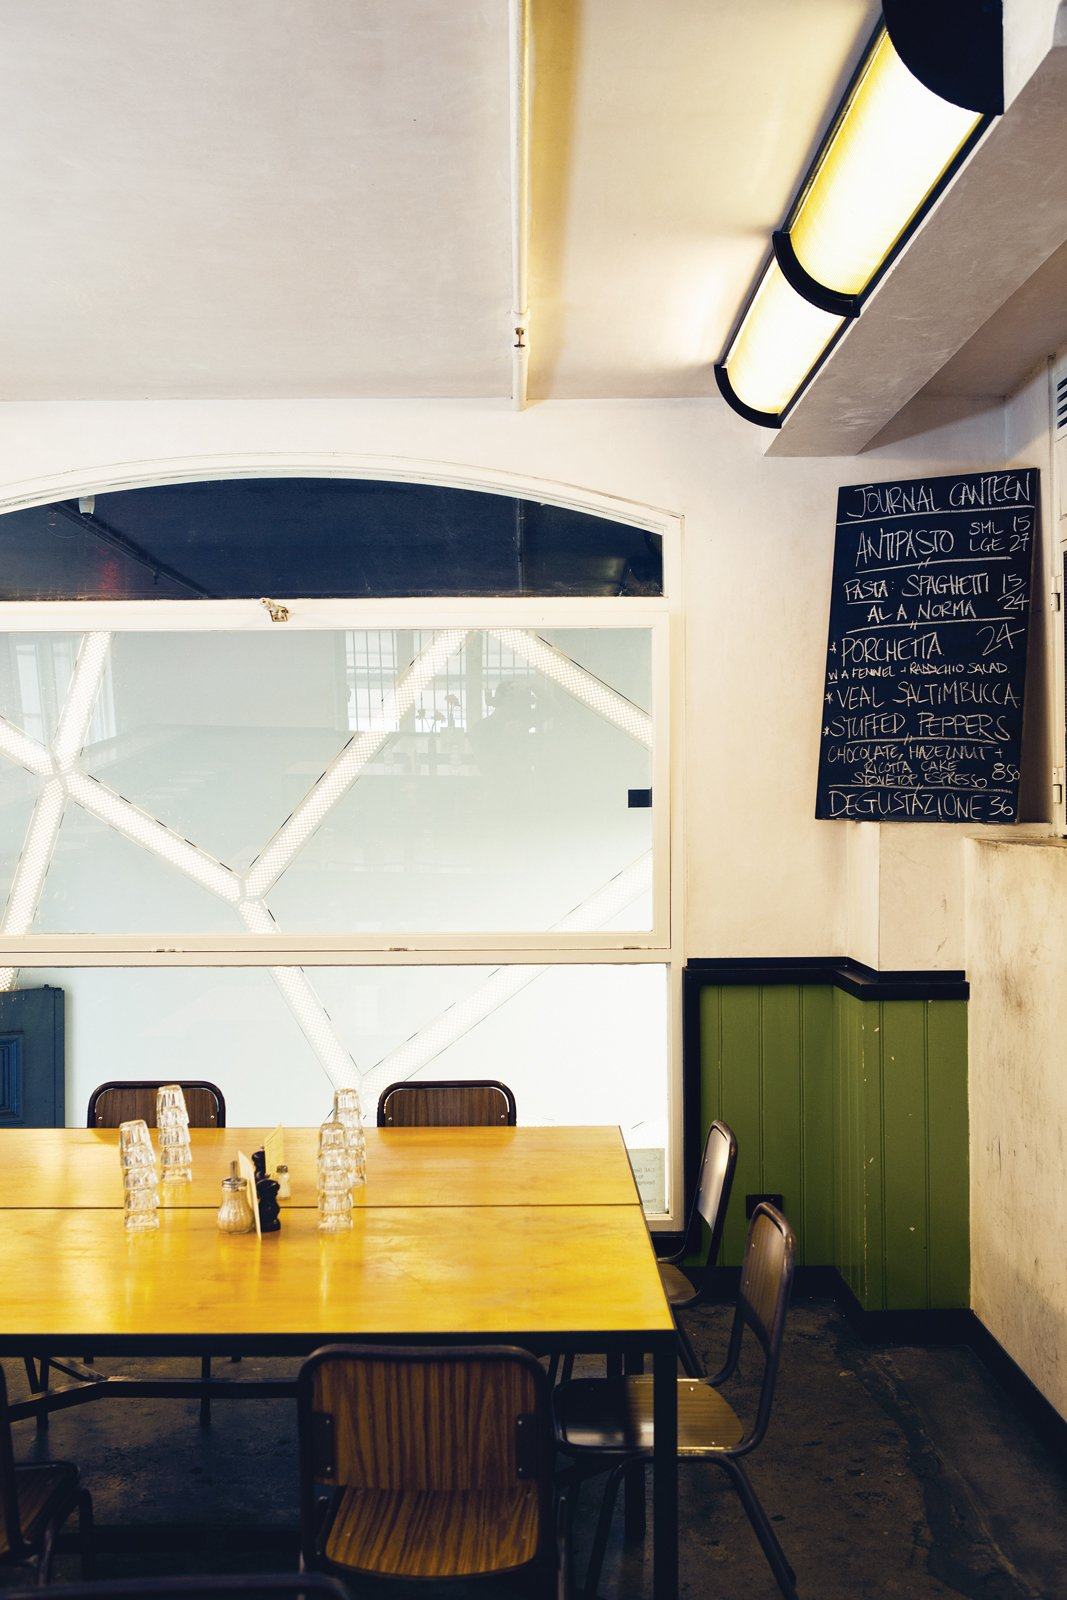 Journal Canteen, upstairs from Journal Cafe  Photo 7 of 24 in Exploring Melbourne, Australia